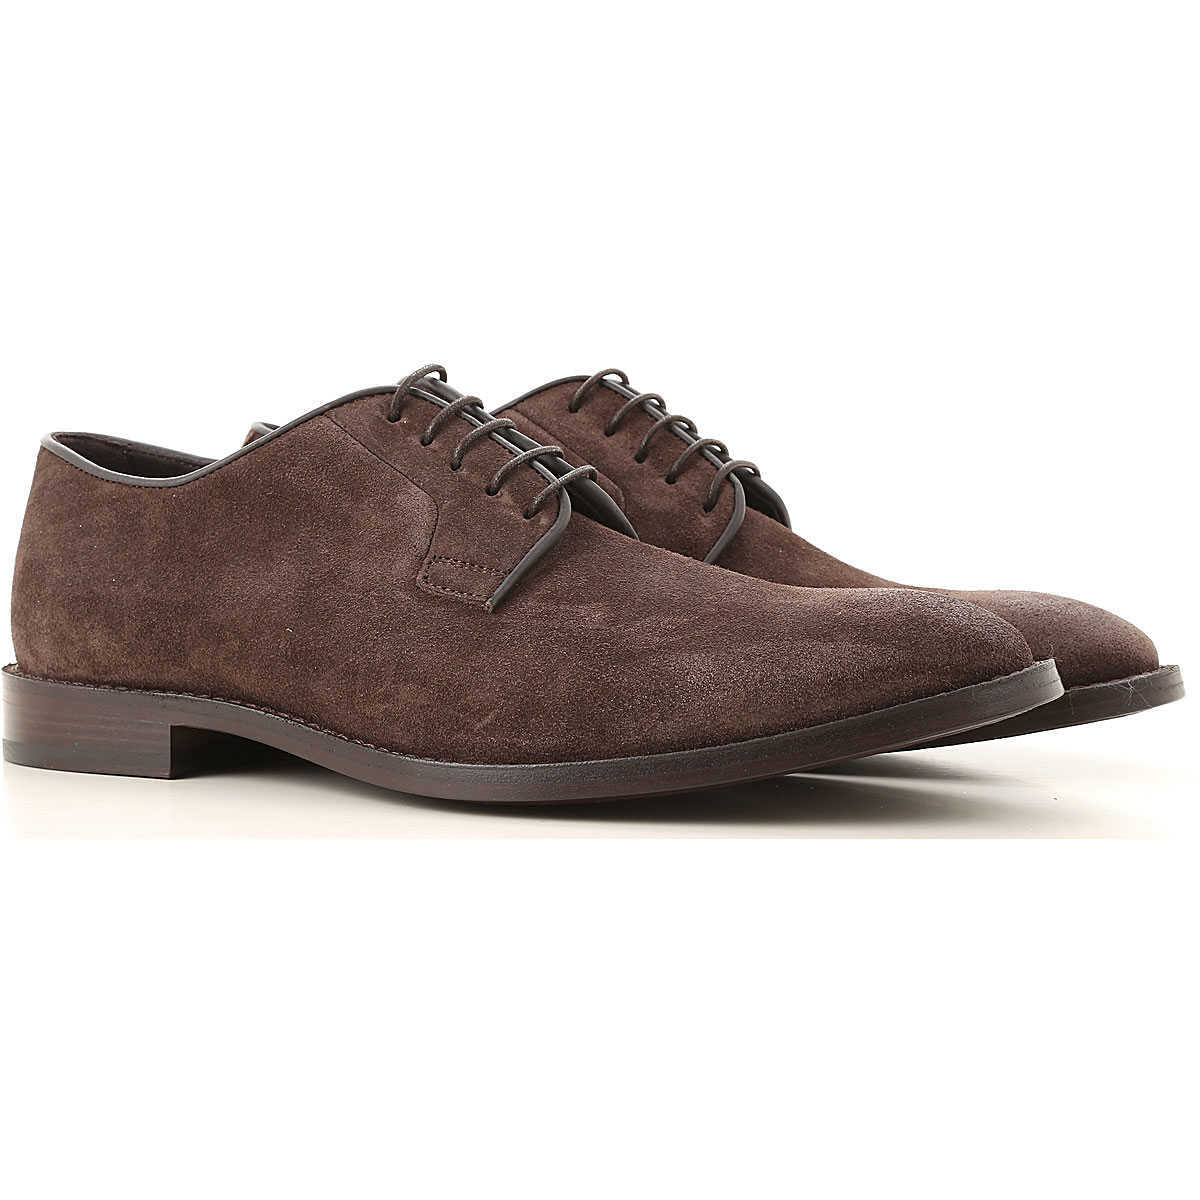 Paul Smith Lace Up Shoes for Men Oxfords UK 8 - EUR 42 - US 9 UK 9 - EUR 43 - US 10 Derbies and Brogues On Sale UK - GOOFASH